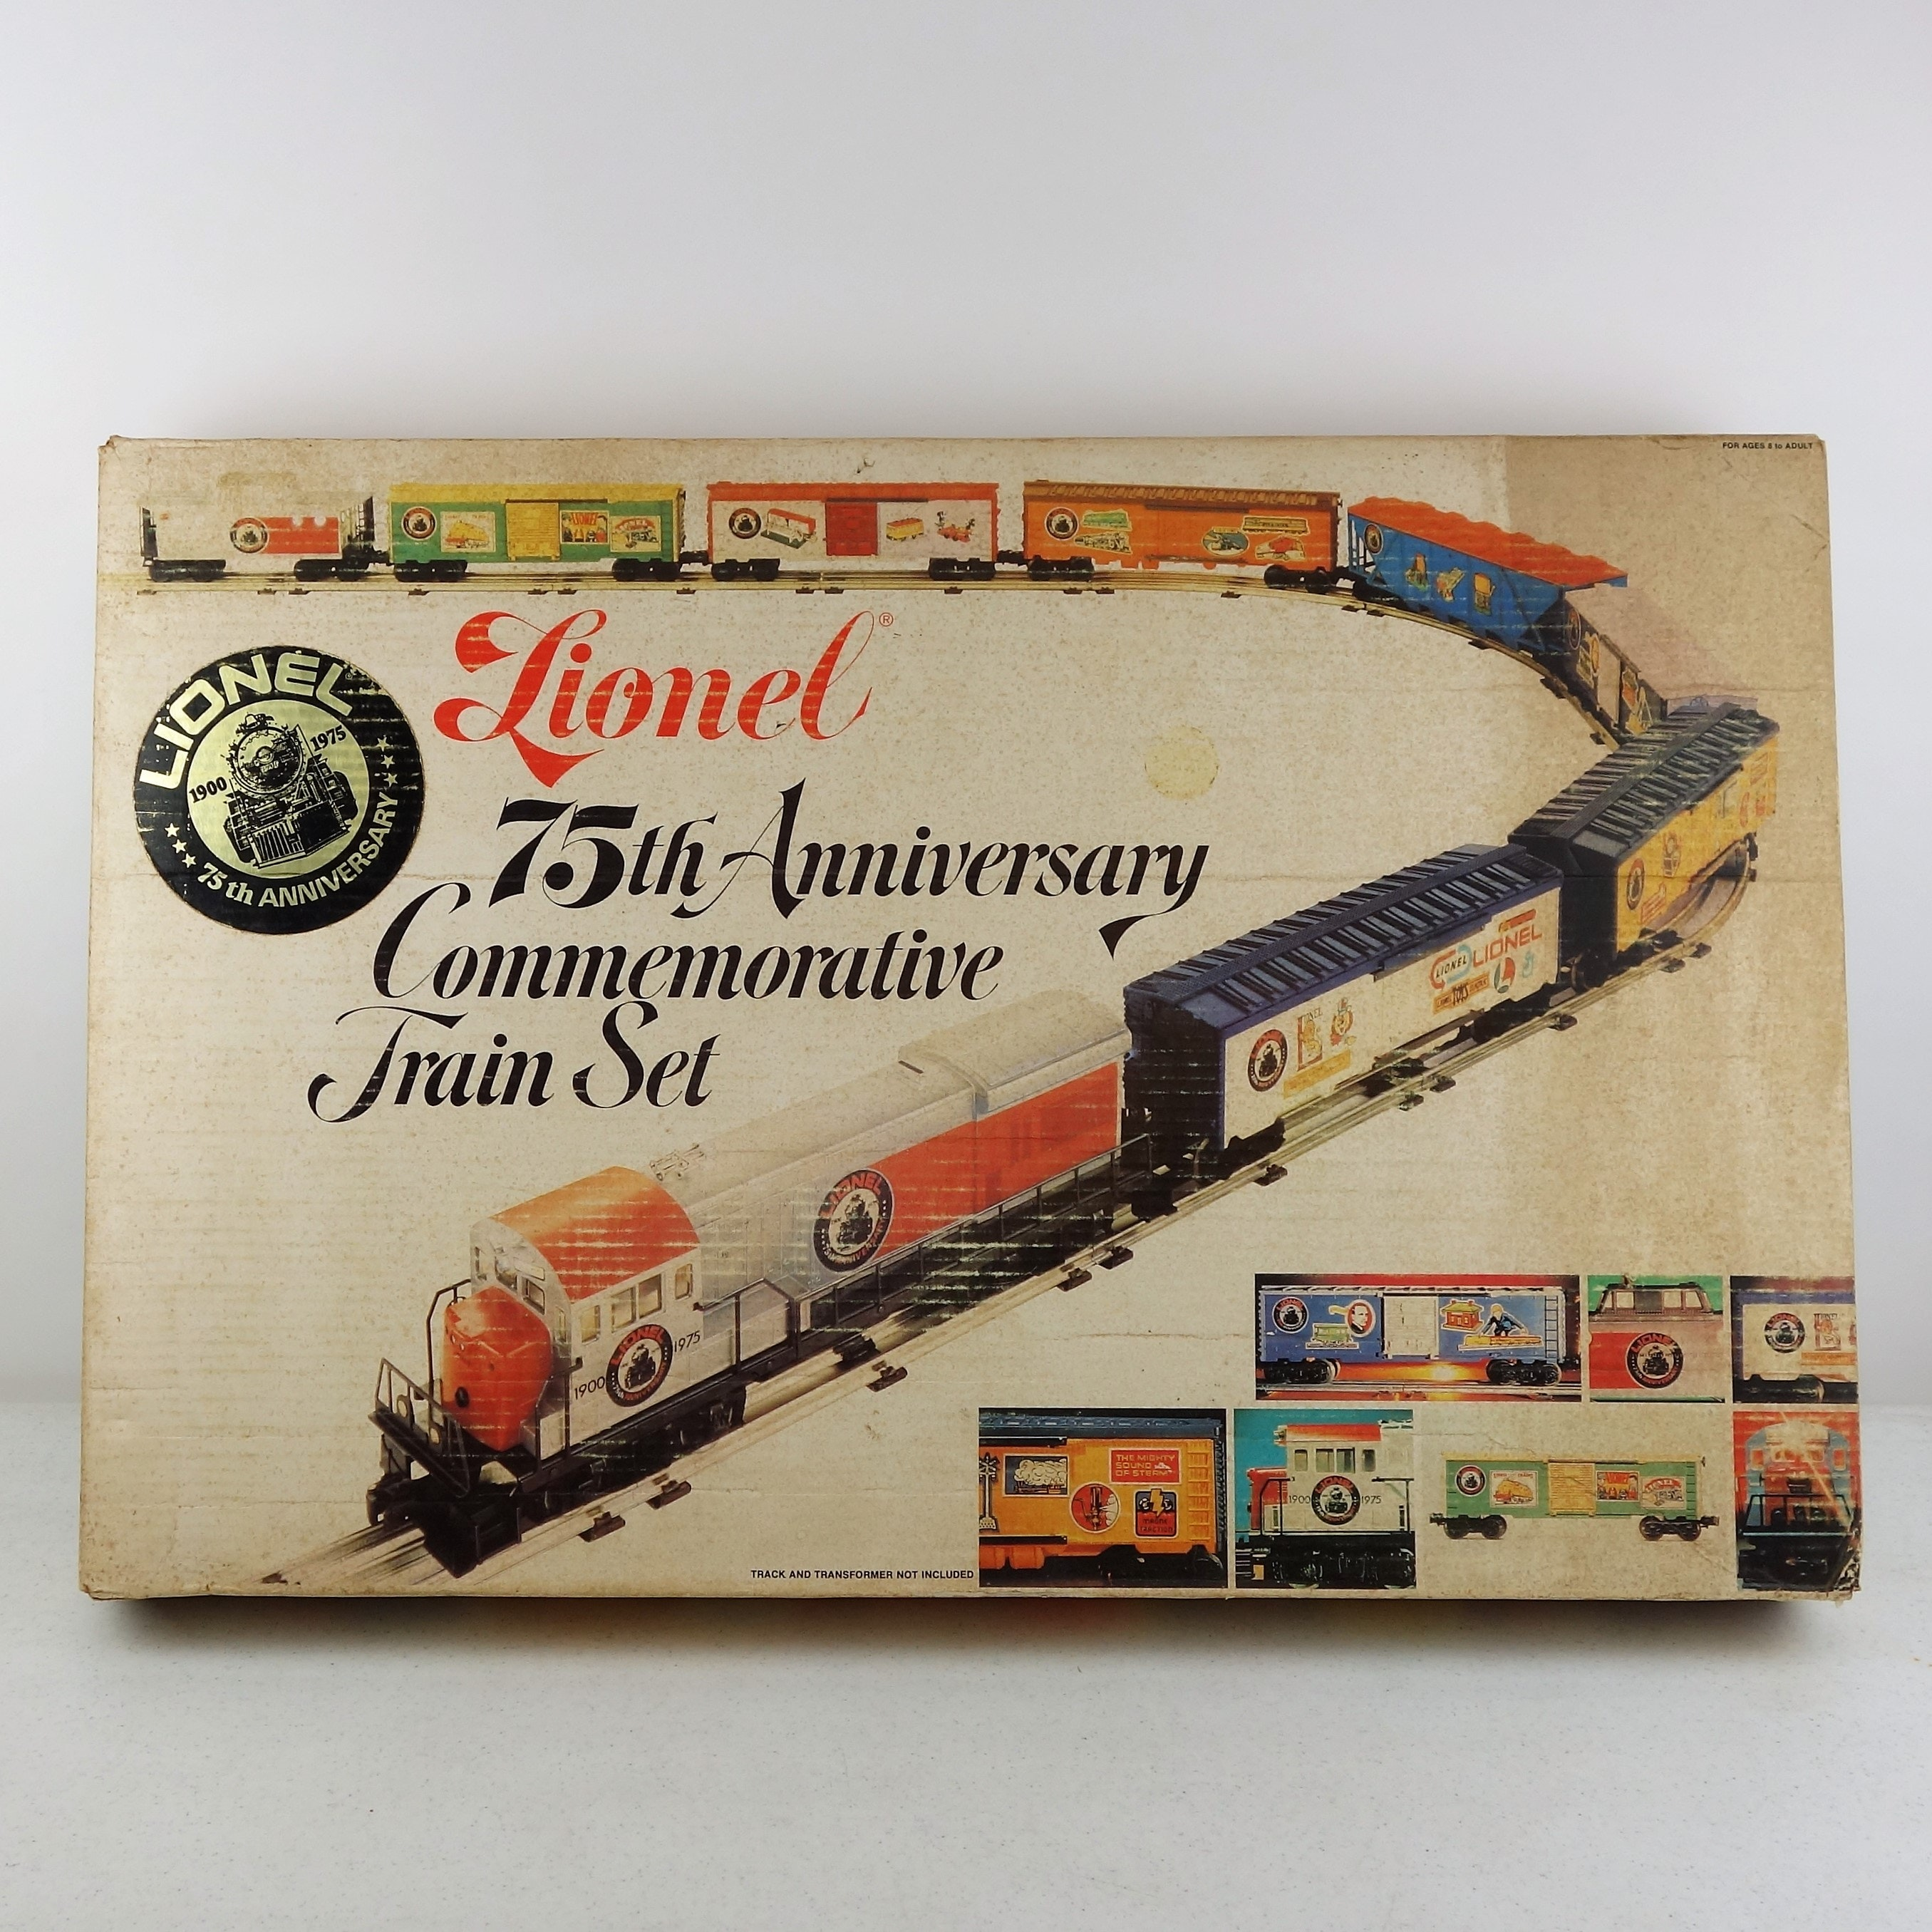 Lionel 75th Anniversary Commemorative Train Set